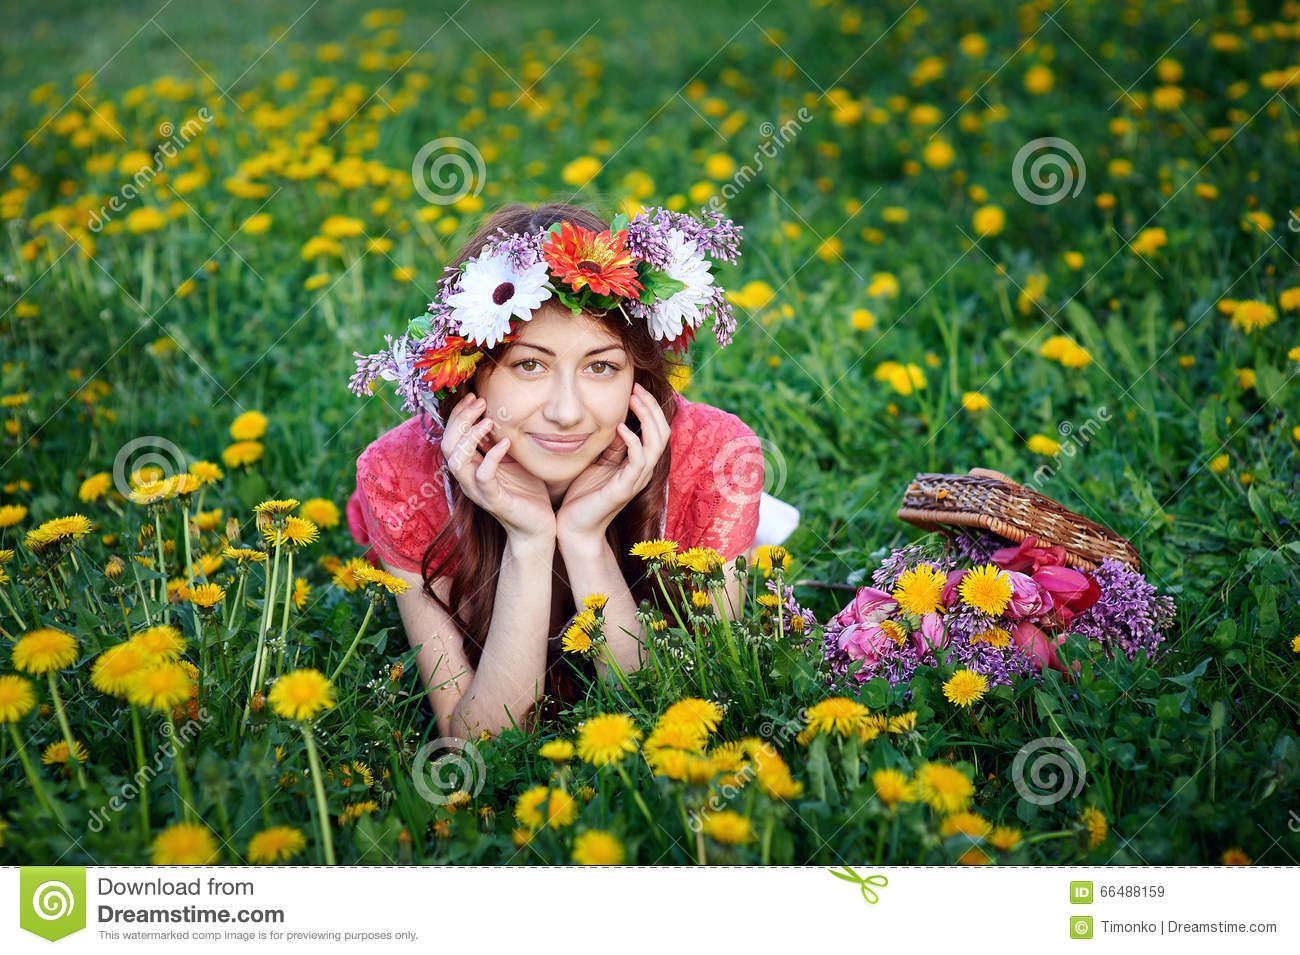 Beautiful woman in a wreath lying on the grass in a meadow